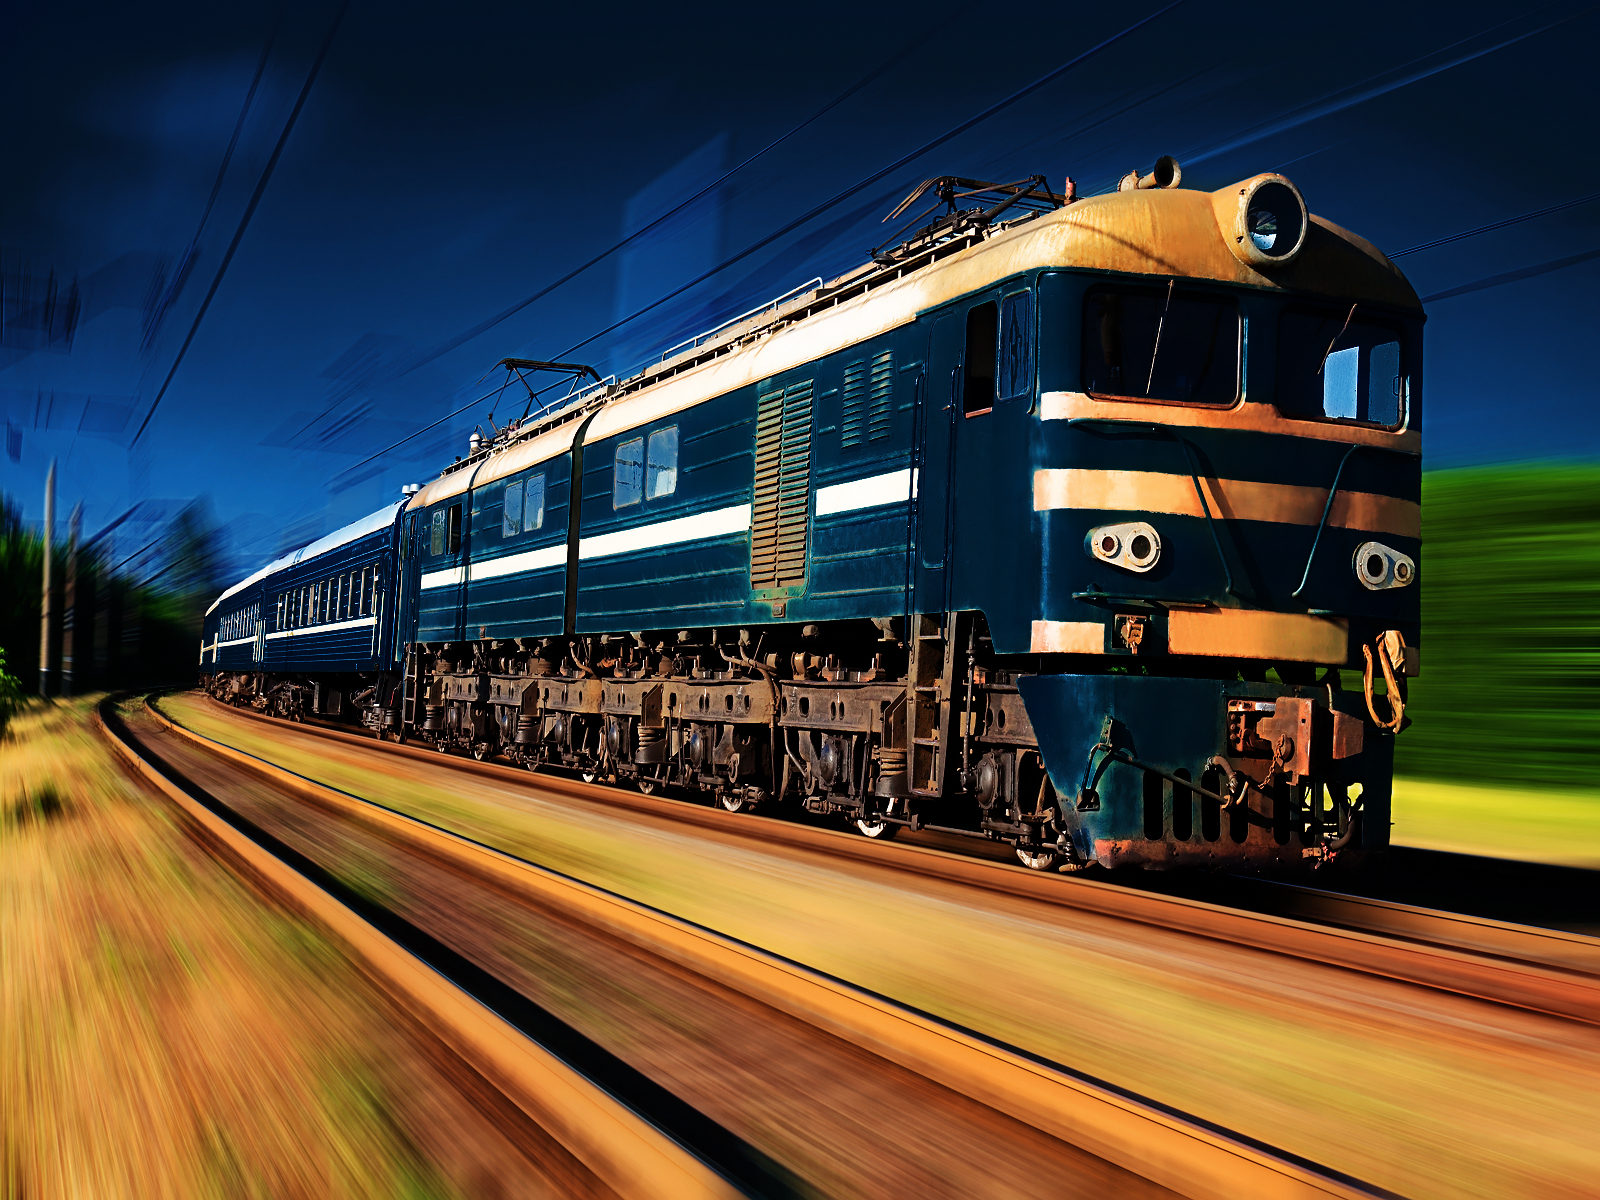 RMD:45 HD Trains Wallpapers